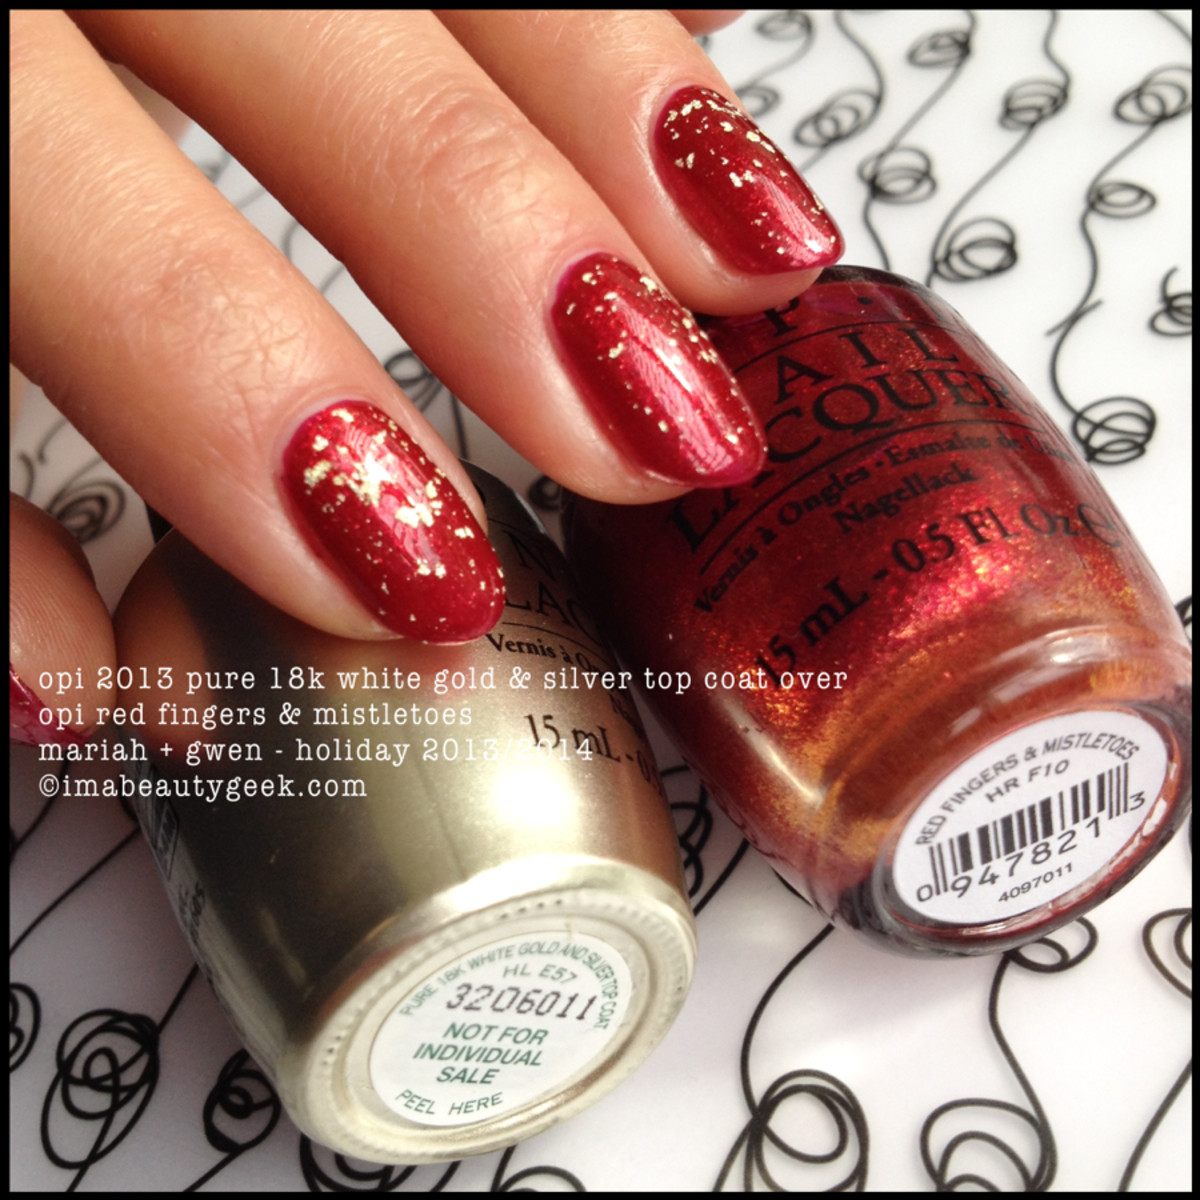 OPI 2013 Pure 18k White Gold & Silver Top Coat over OPI Red Fingers and Mistletoes_Mariah and Gwen Holiday 2013 and 2014